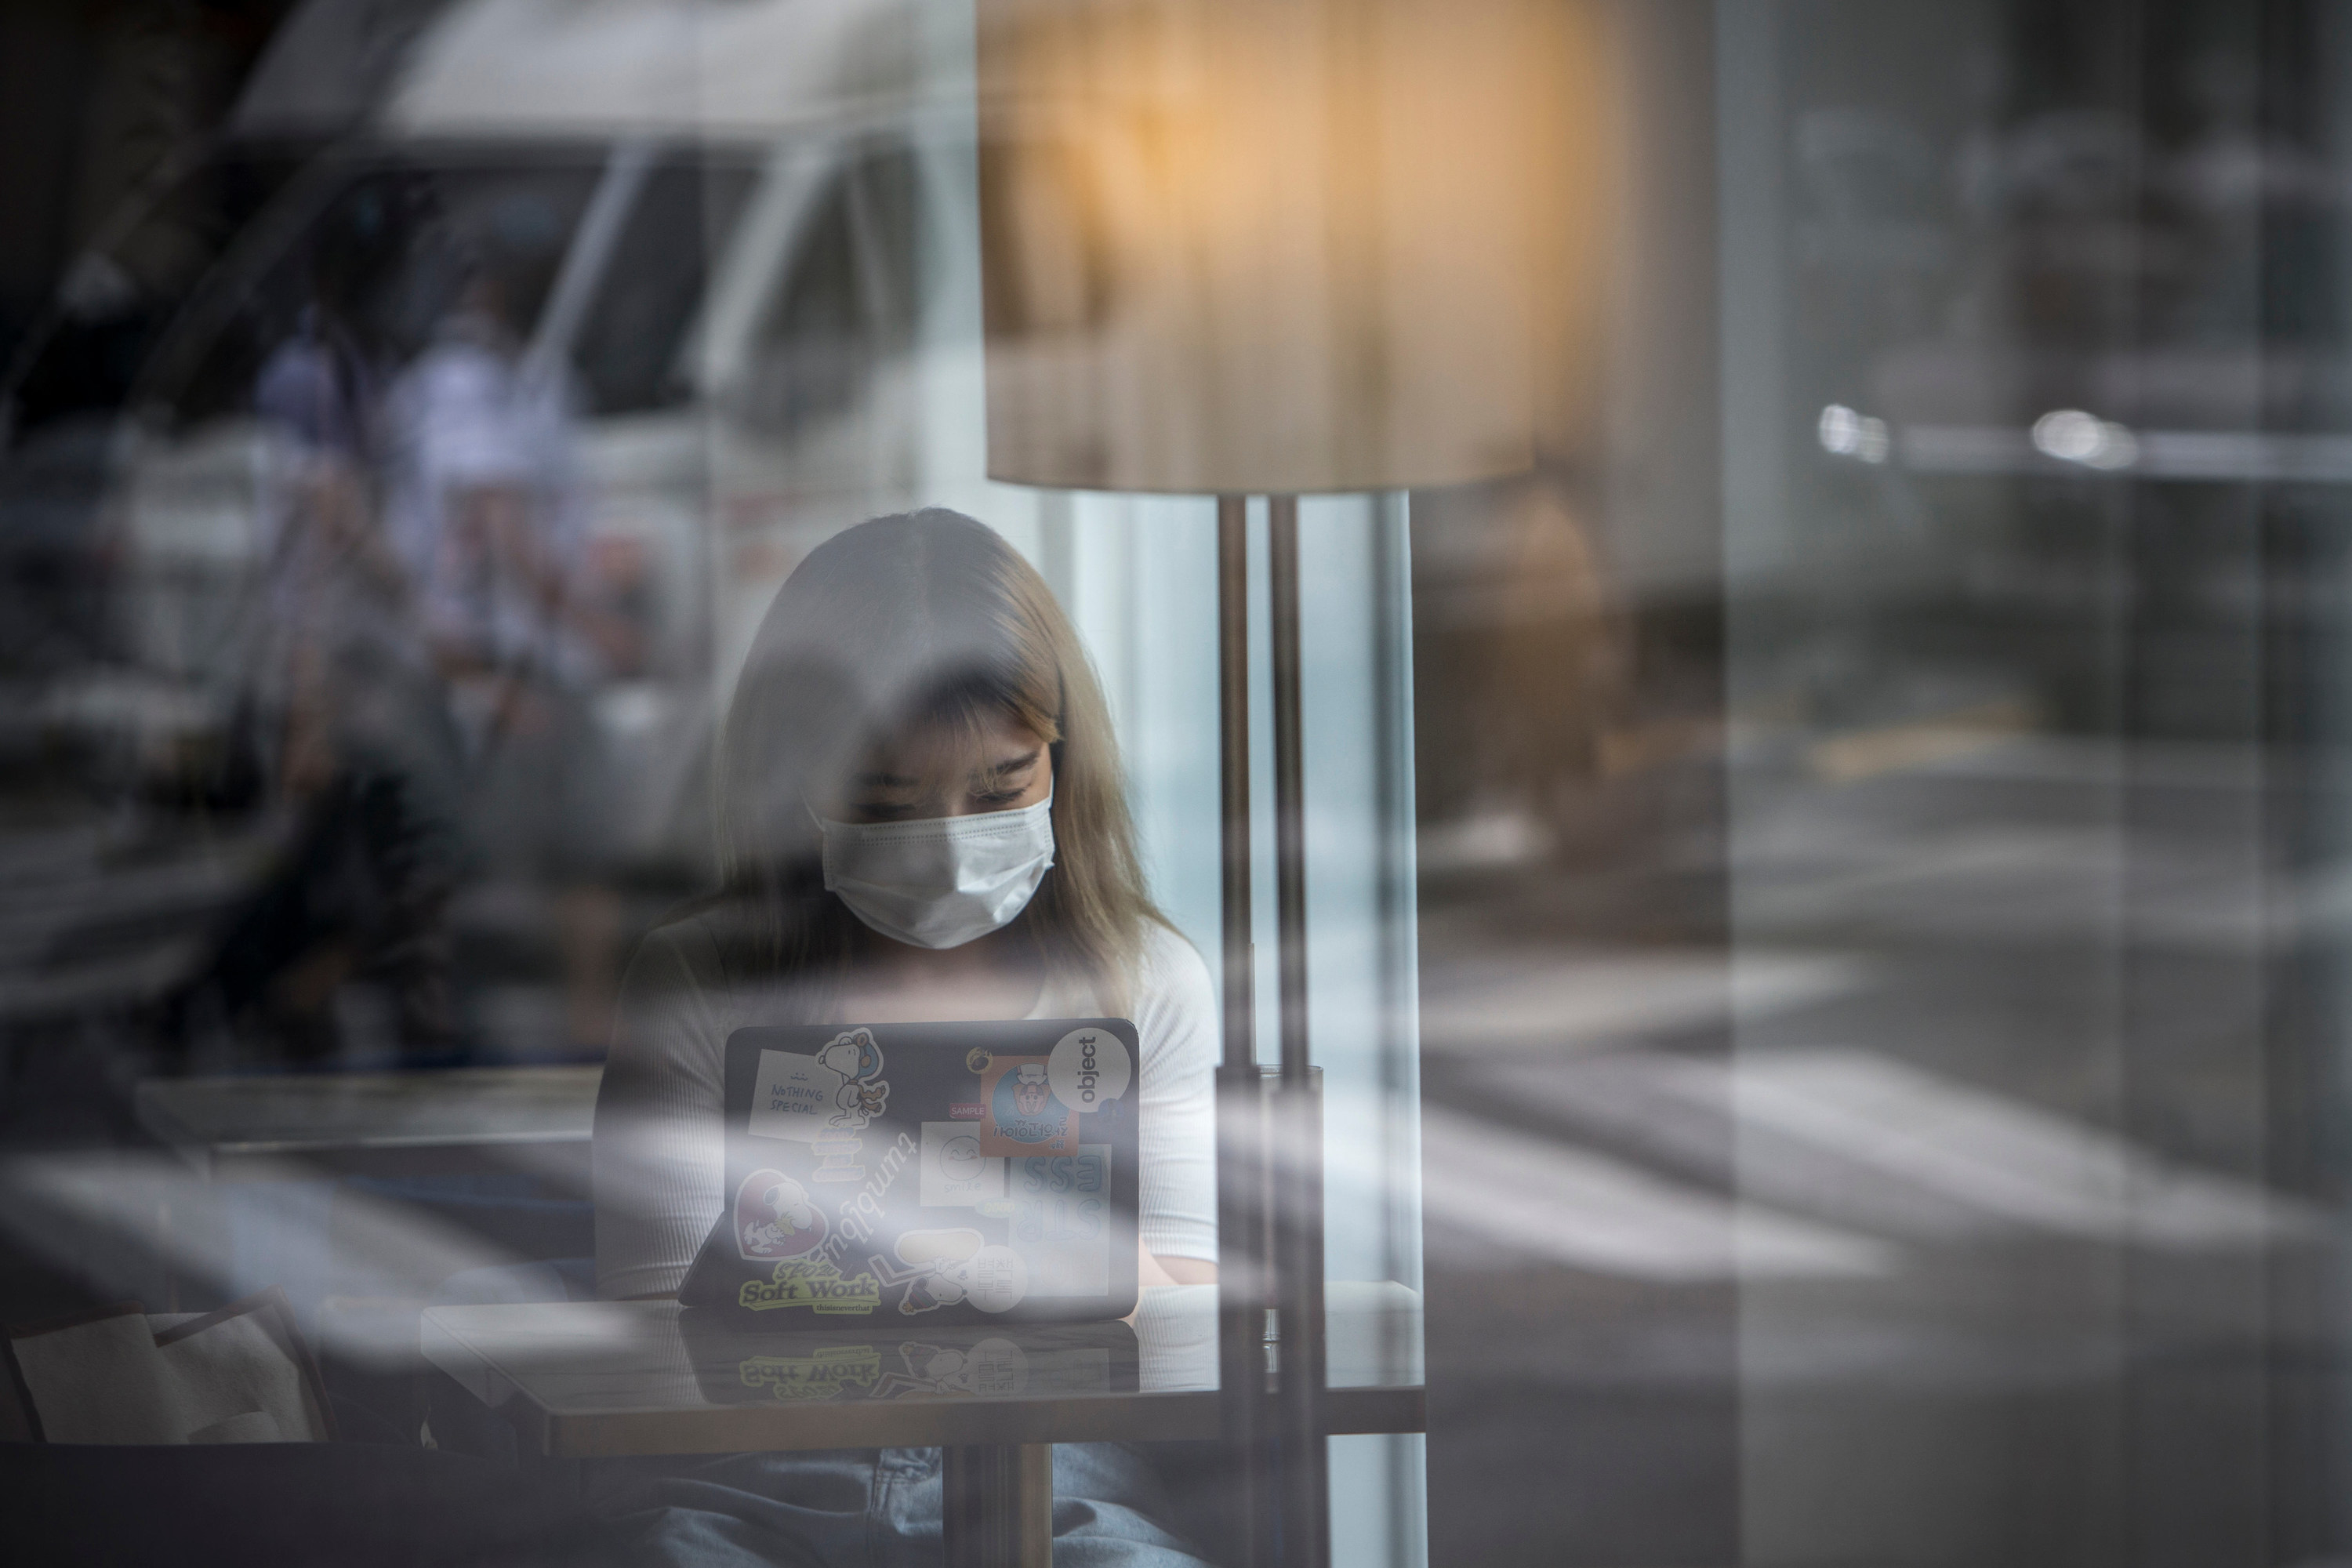 Seen through a window, a woman wearing a face mask sits in a coffee shop in front of her laptop